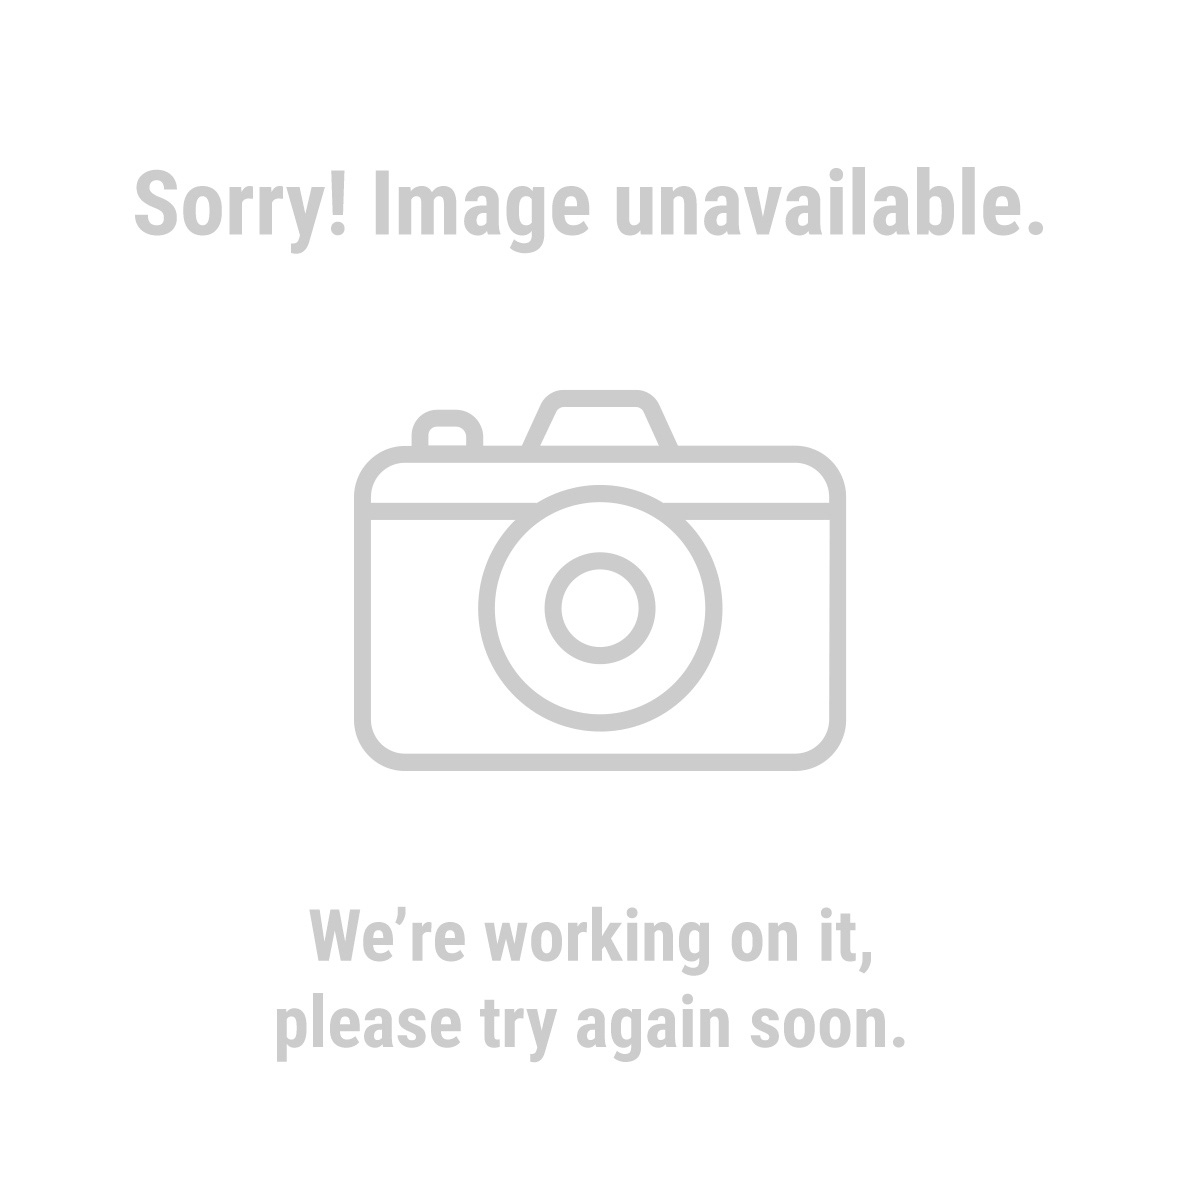 802400 in addition Drill Hilti additionally 203494112 as well Milwaukee 2720 21 M18 Fuel Sawzall Reciprocating Saw Kit besides 142404008237. on ridgid 18 volt cordless drill